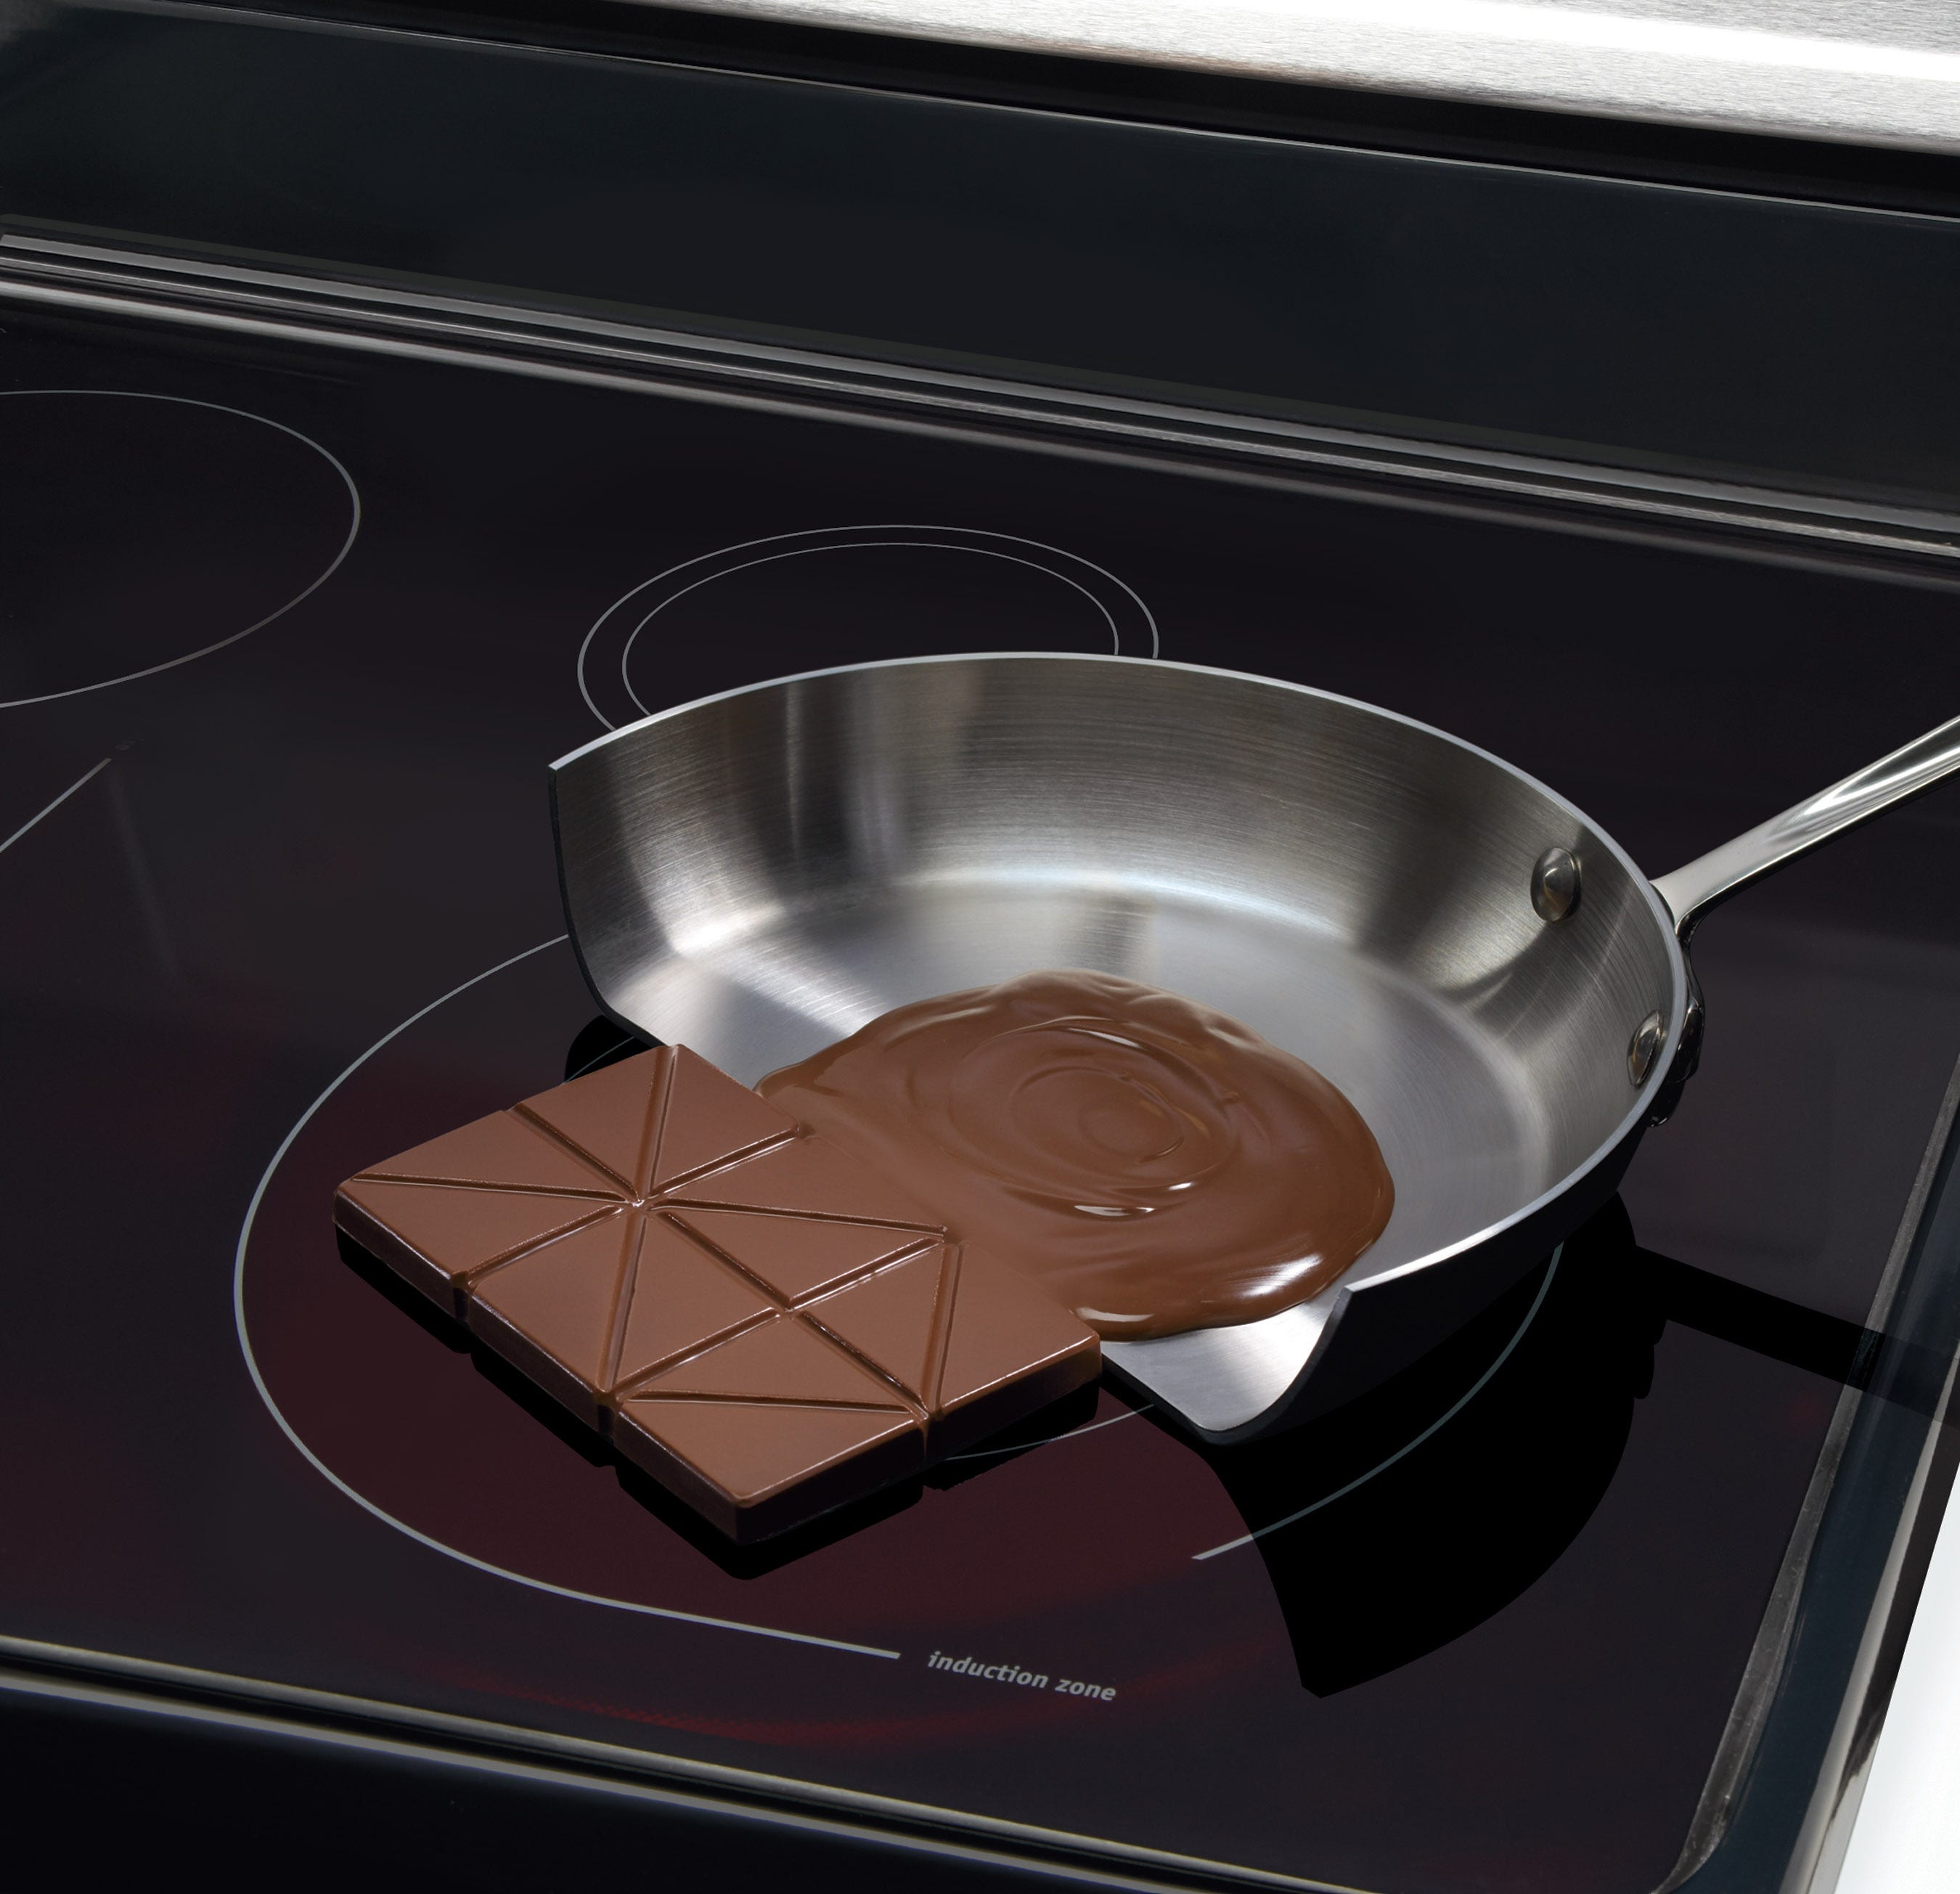 gaining in popularity induction technology uses magnets to heat pots and pans without directly heating the stove top